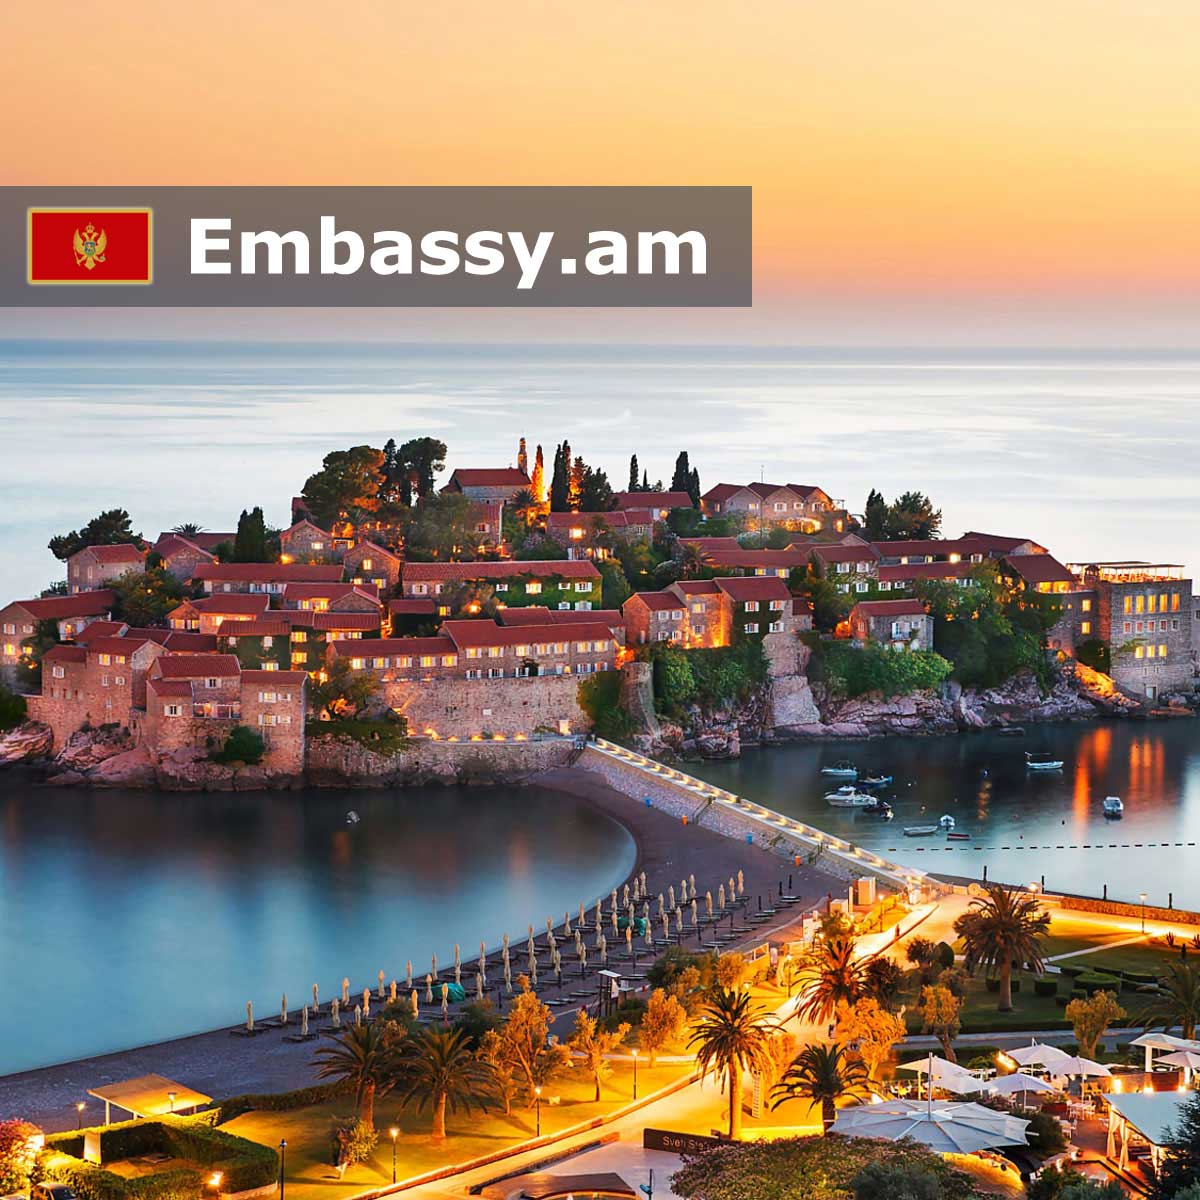 Hotels in Montenegro- Embassy.am